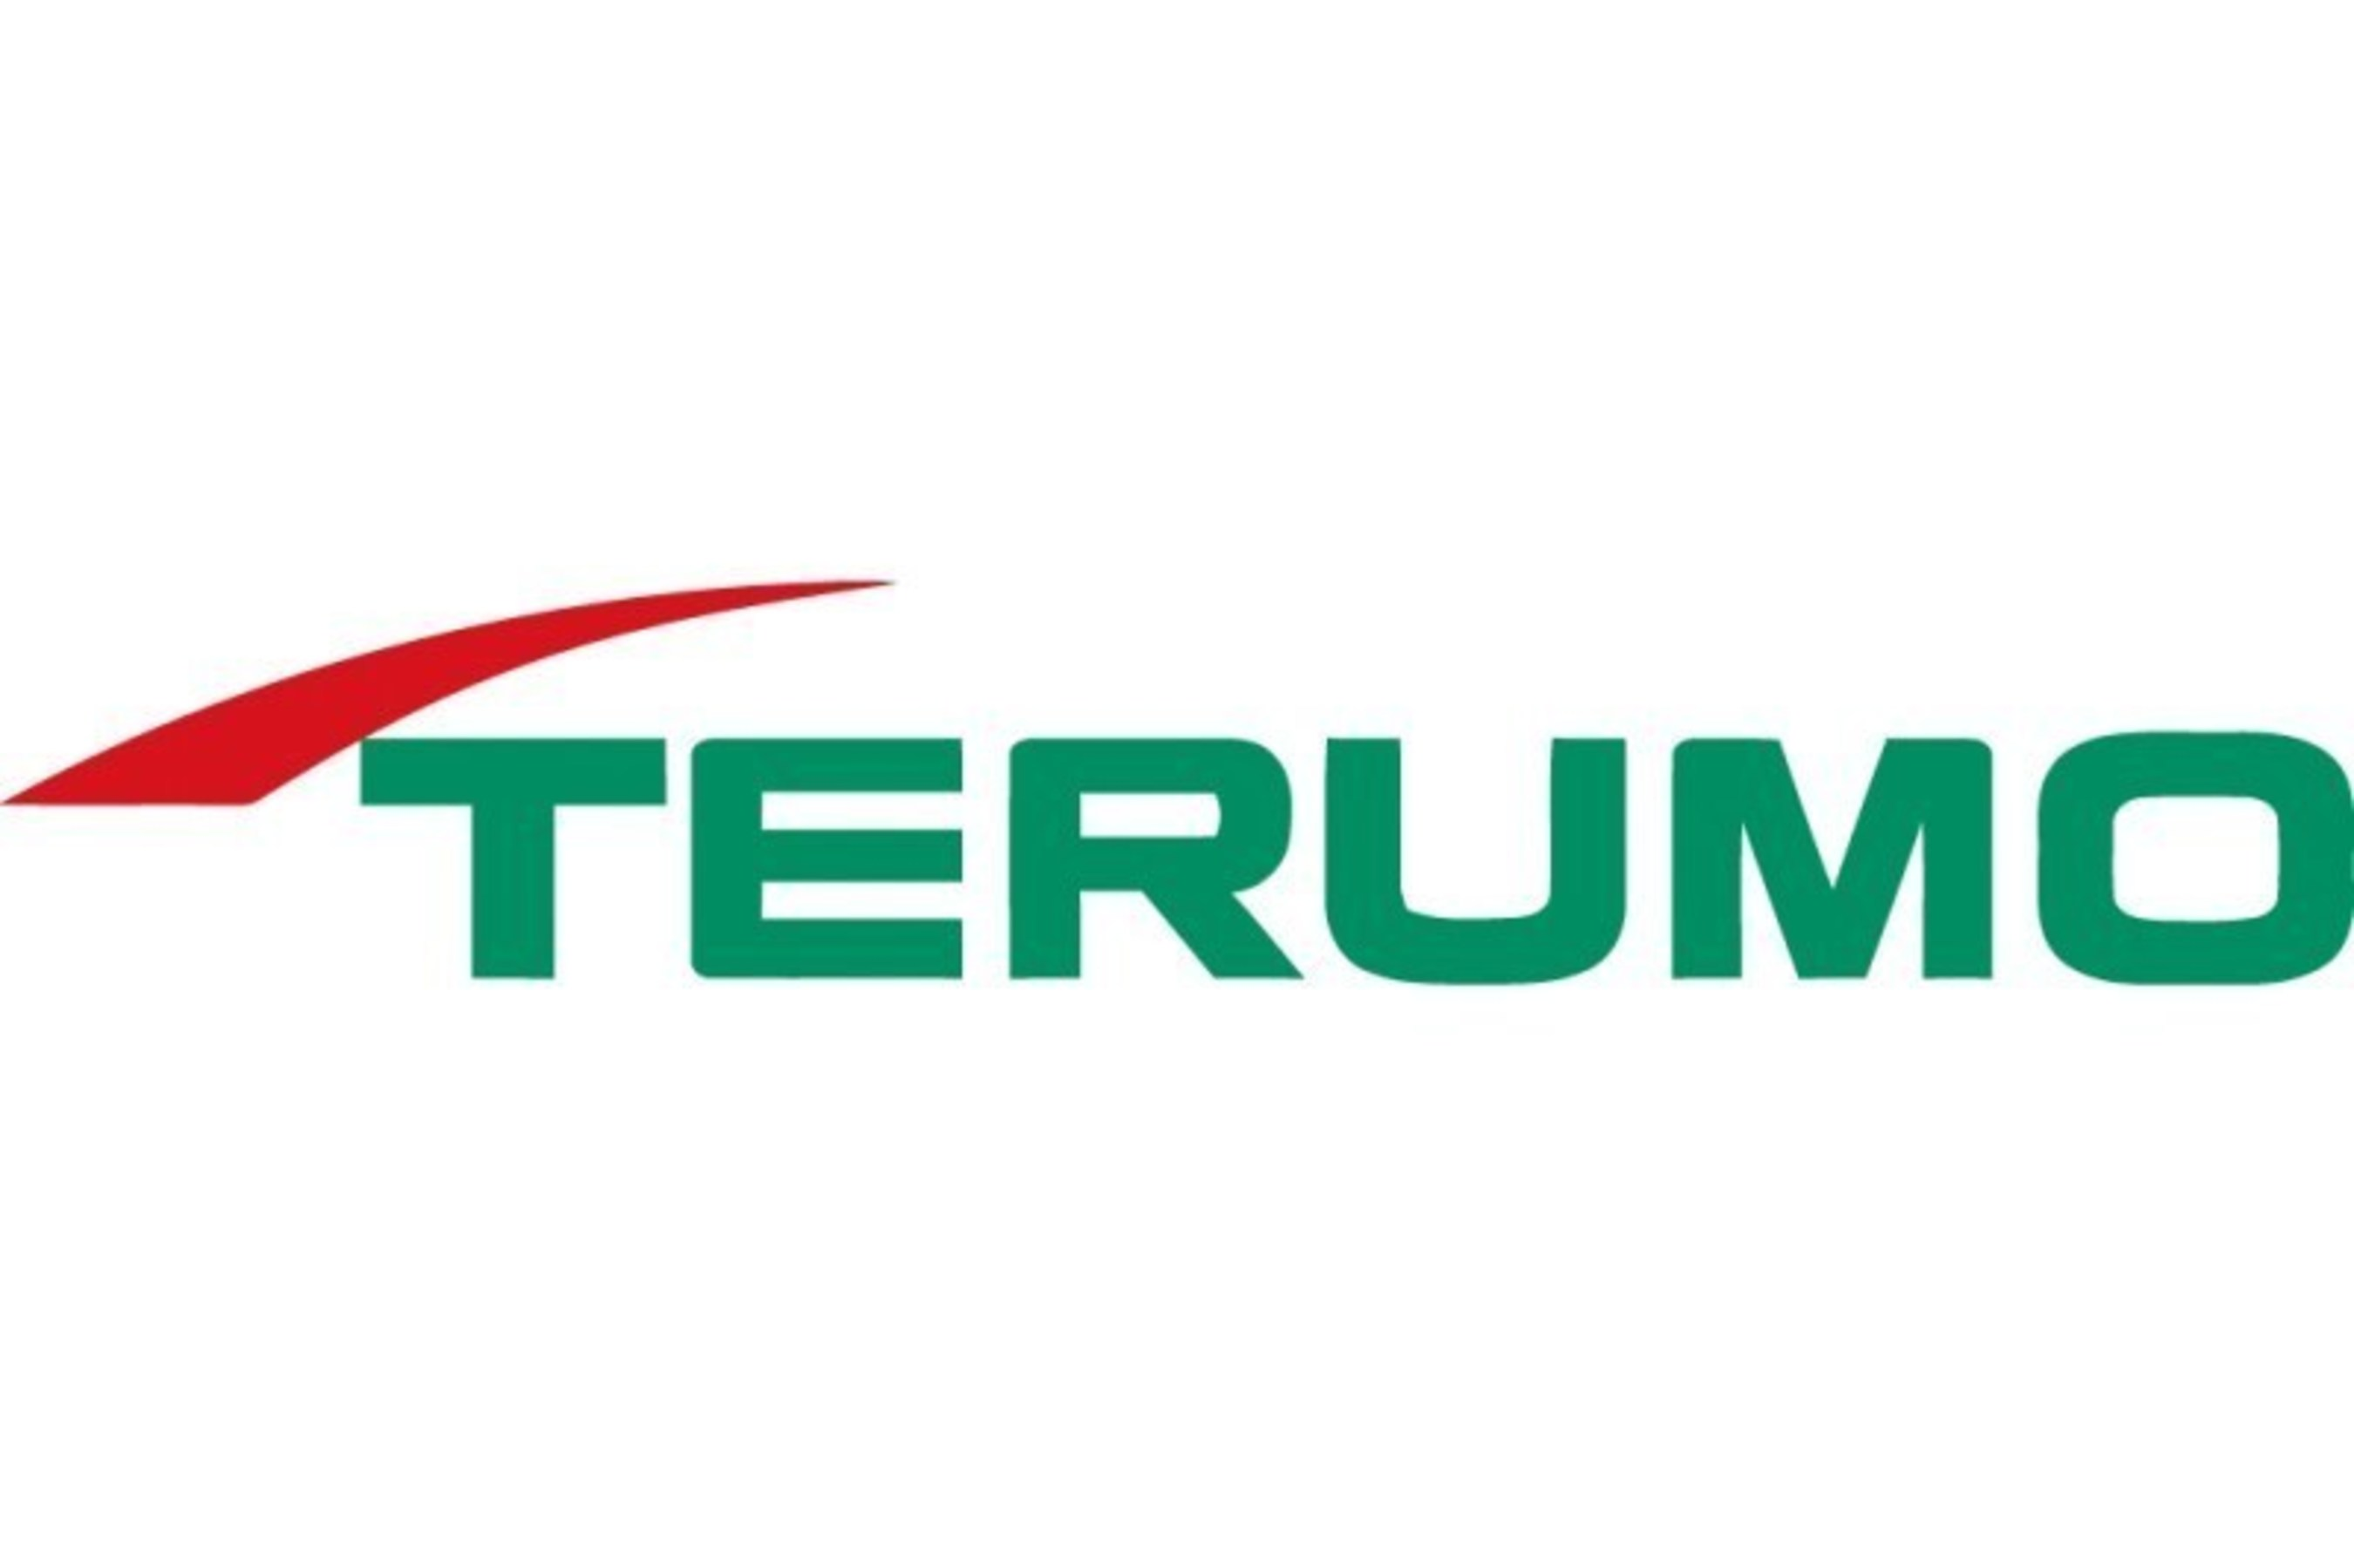 Terumo Corporation logo